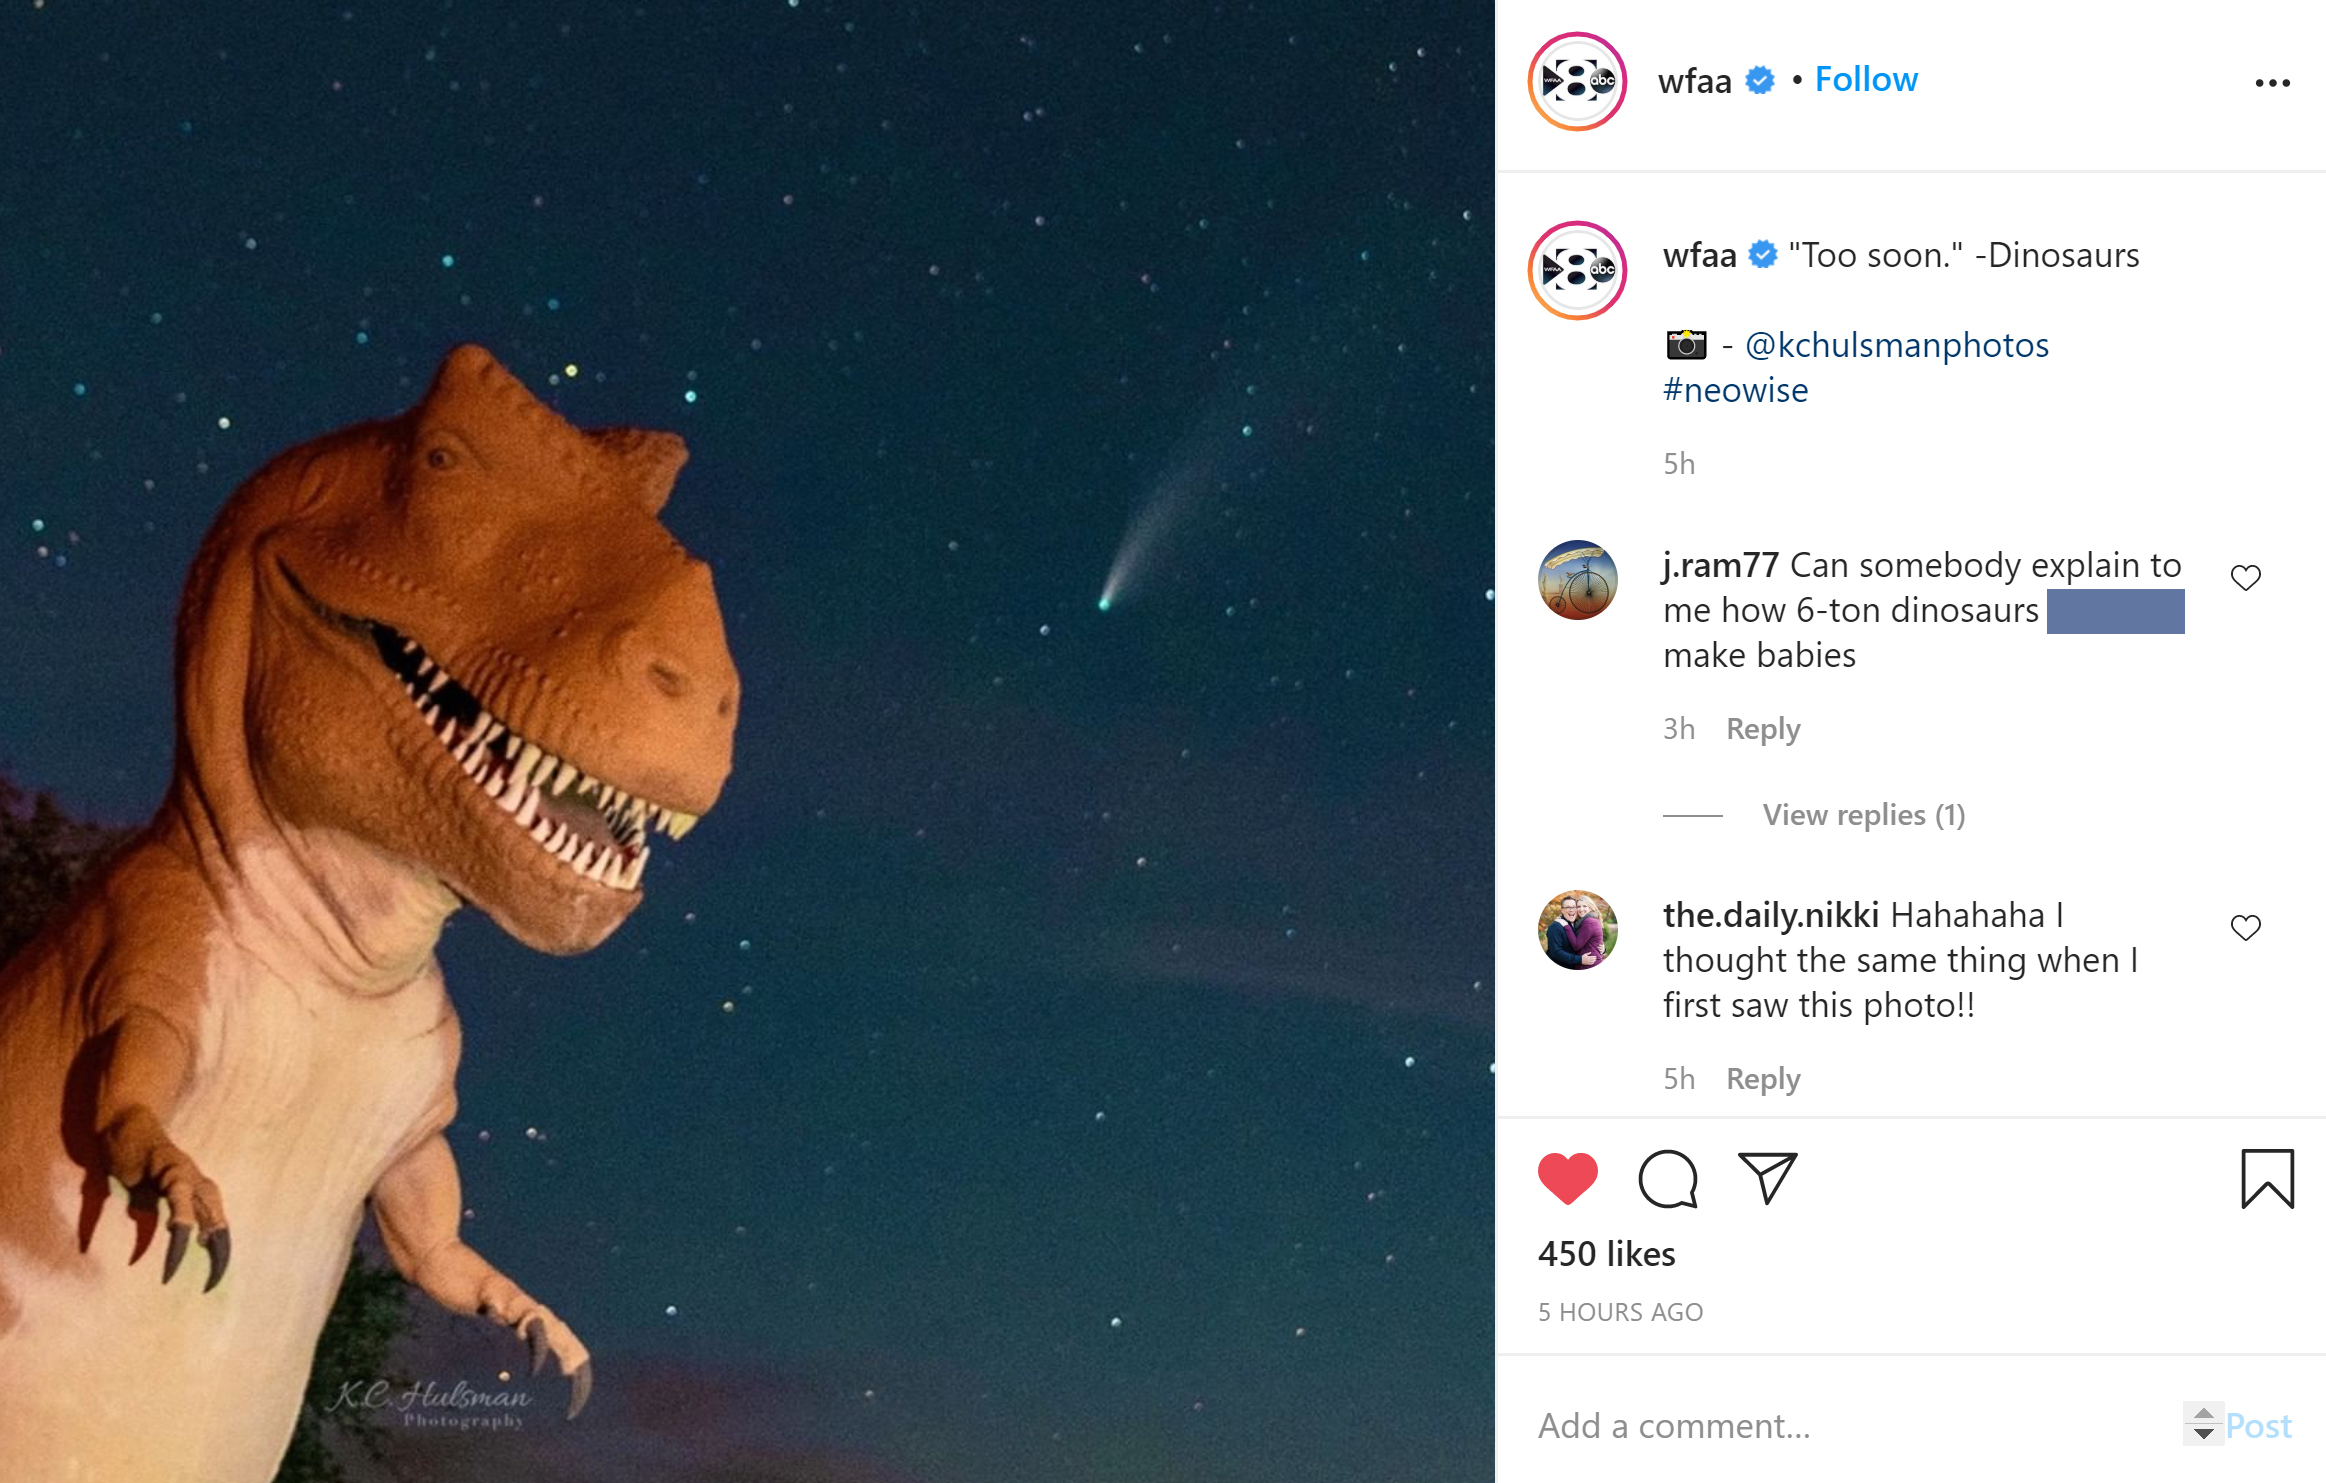 Social Media Screenshot from WFAA featuring their post of KC Hulsman's photograph of Comet Neowise and a Sinclair Dinosaur Statue